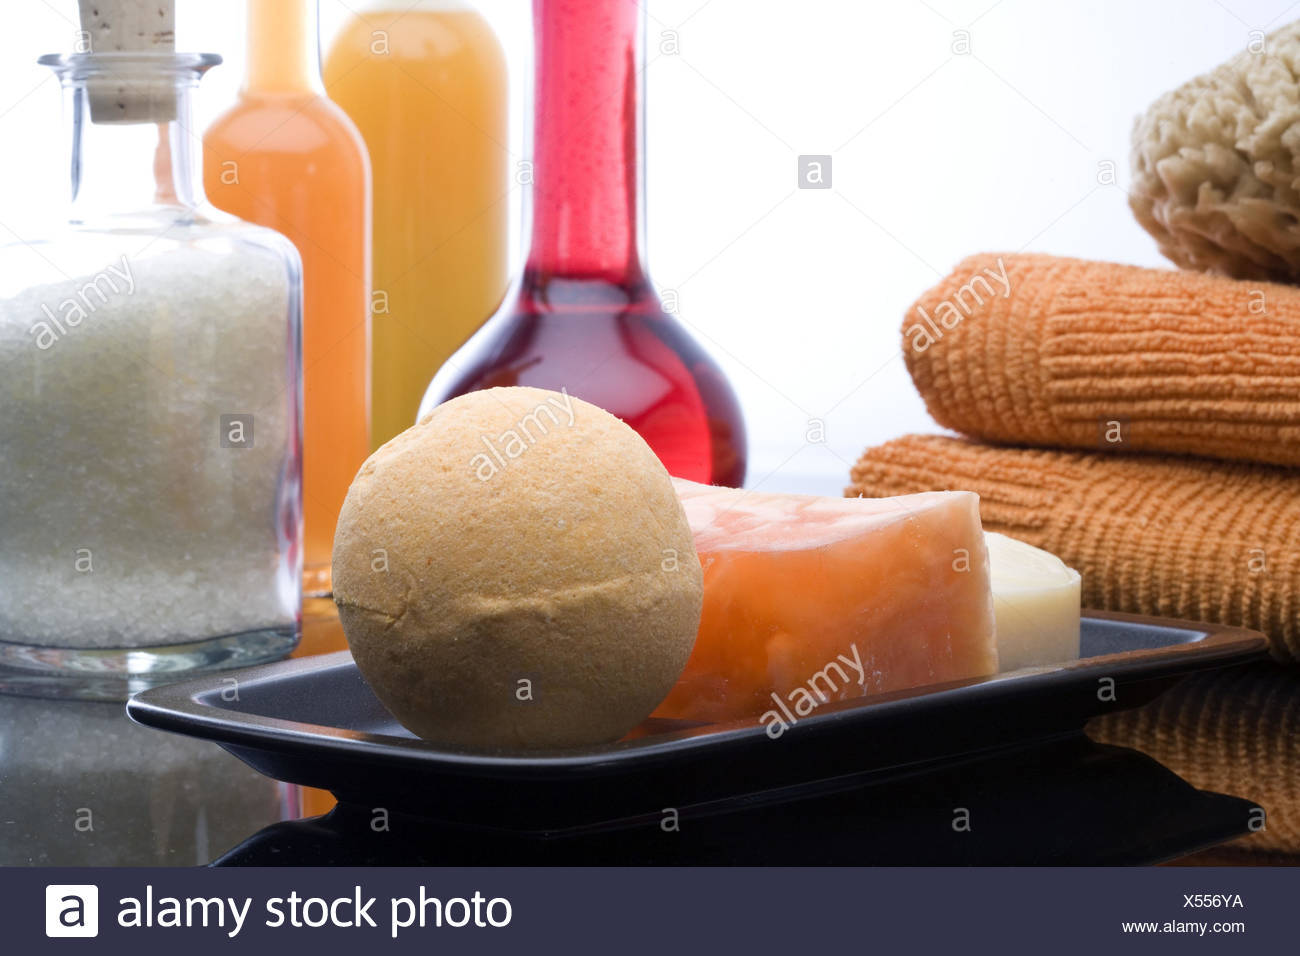 Bath products, differently, towels, fungus, detail, - Stock Image